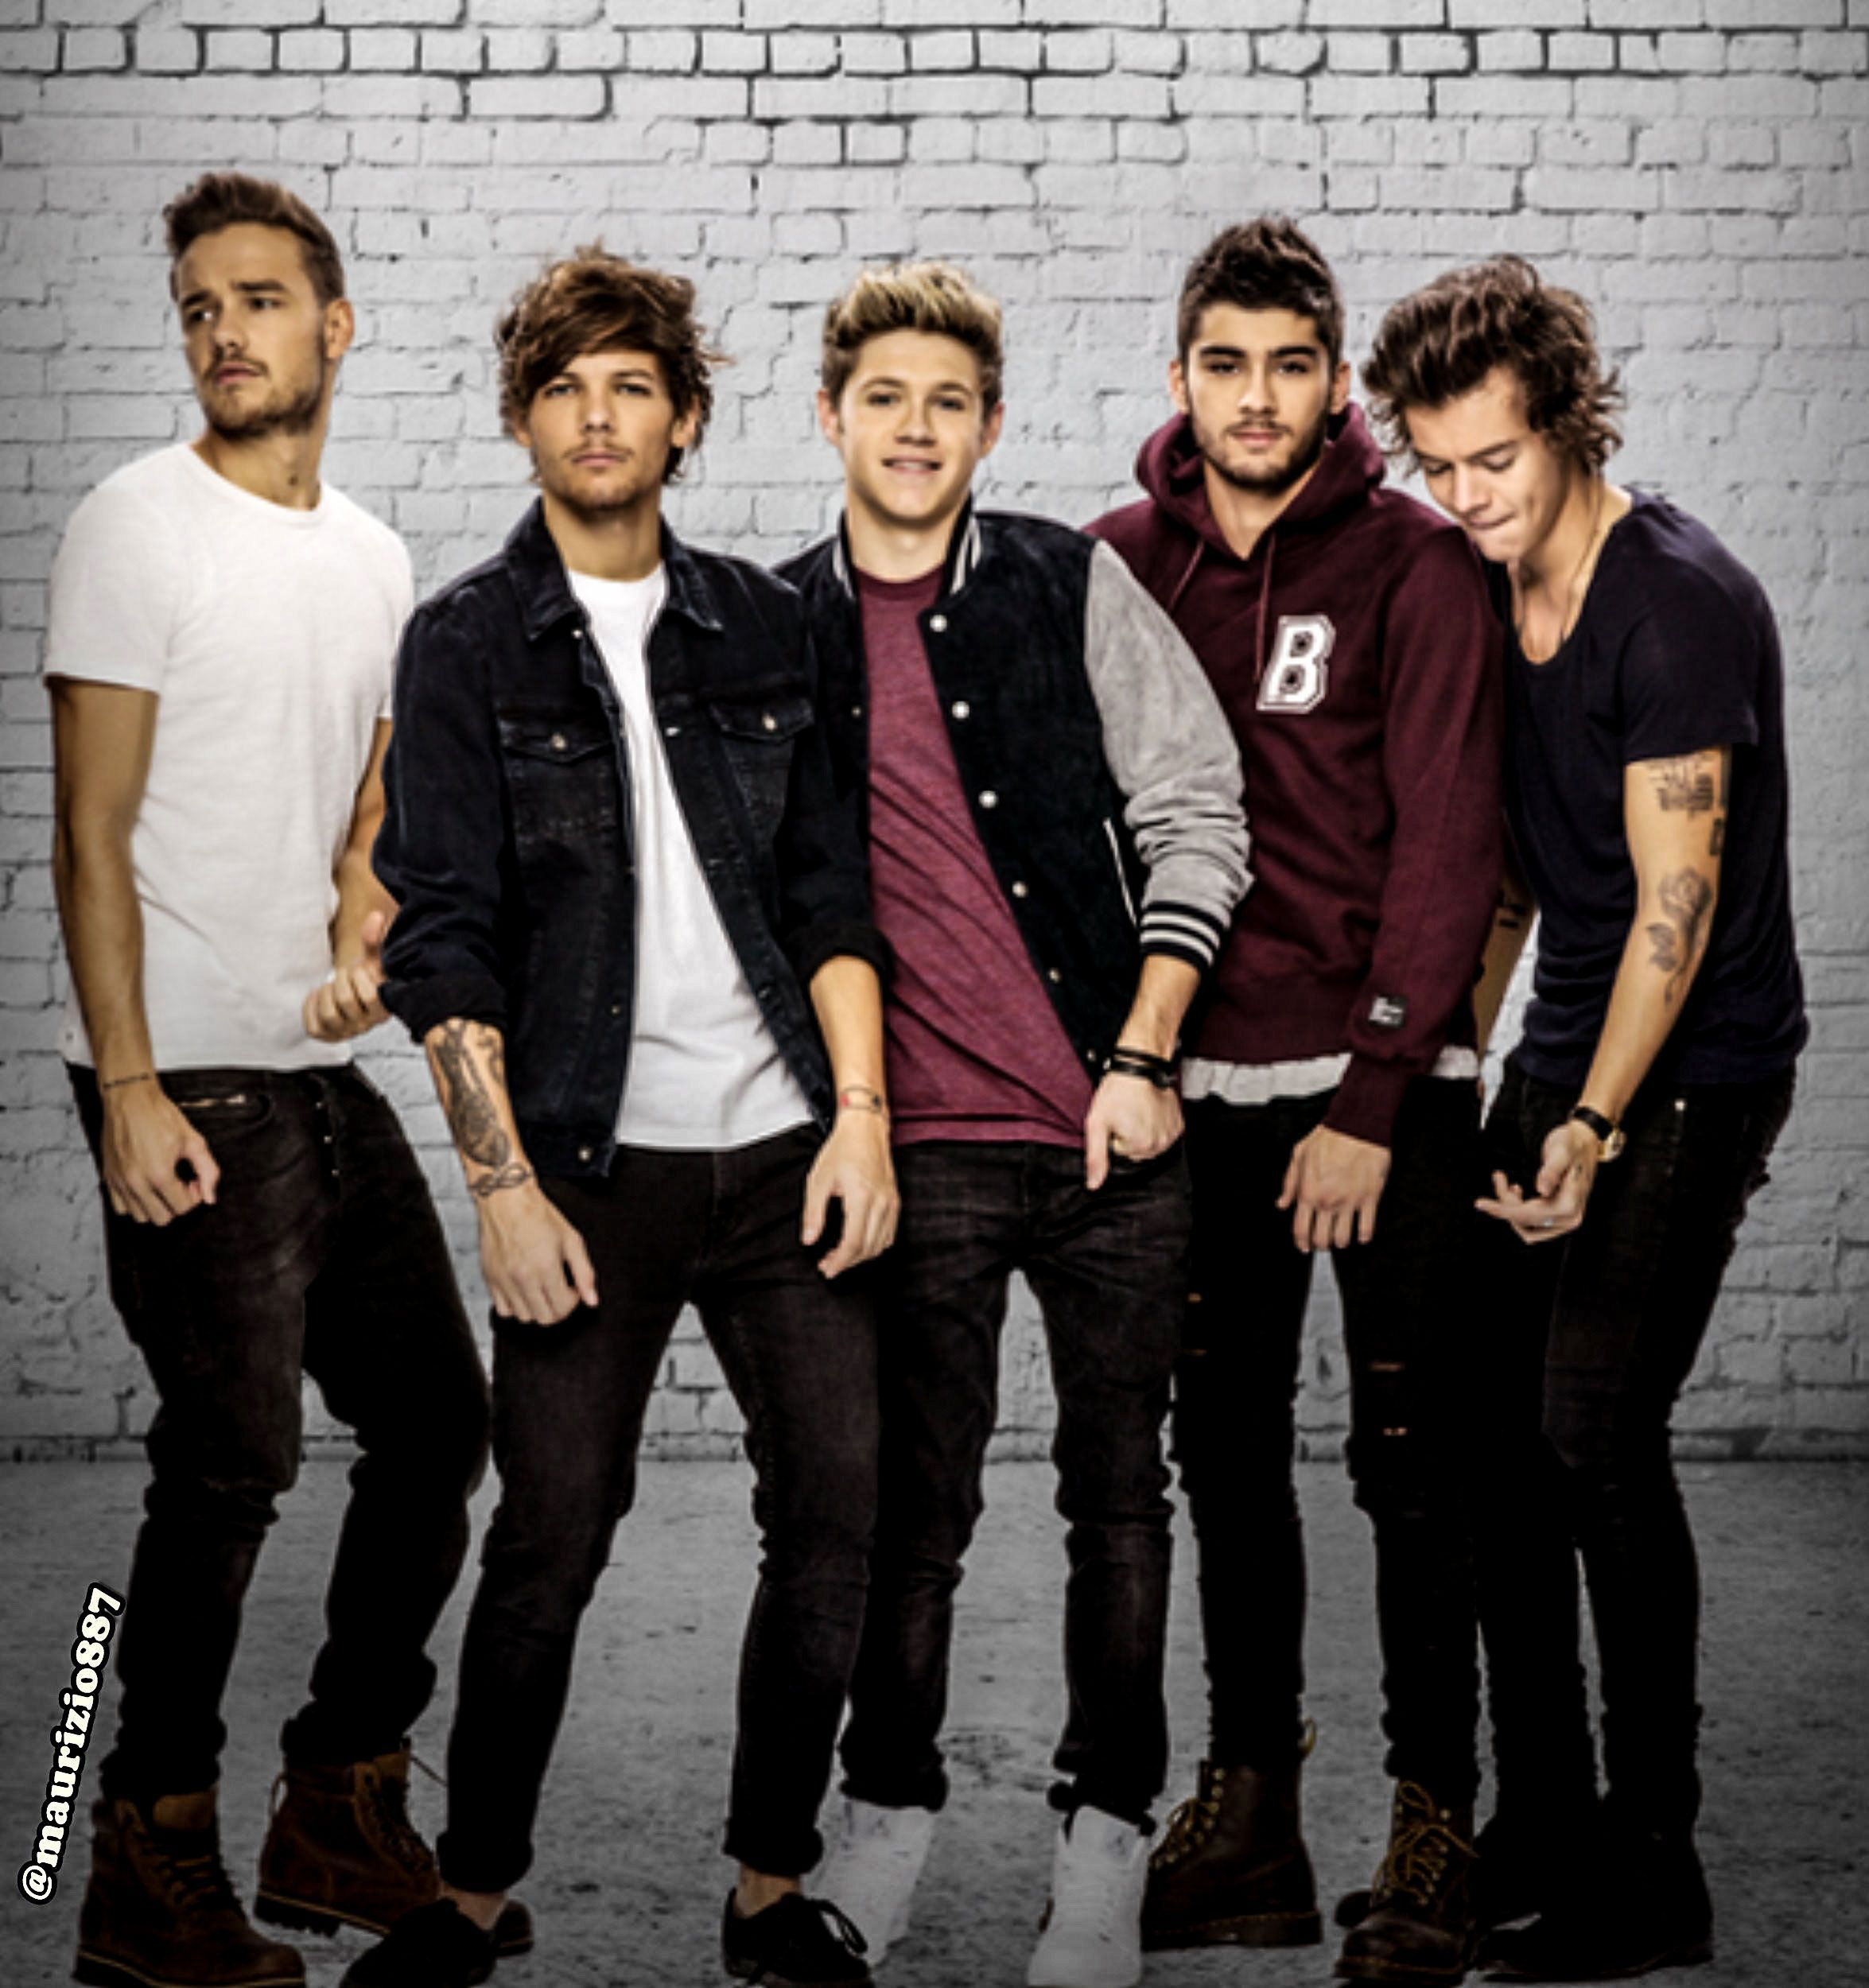 one direction,photoshoot 2014 #onedirection2014 one direction 2014 | One Direction one direction,photoshoot 2014 #onedirection2014